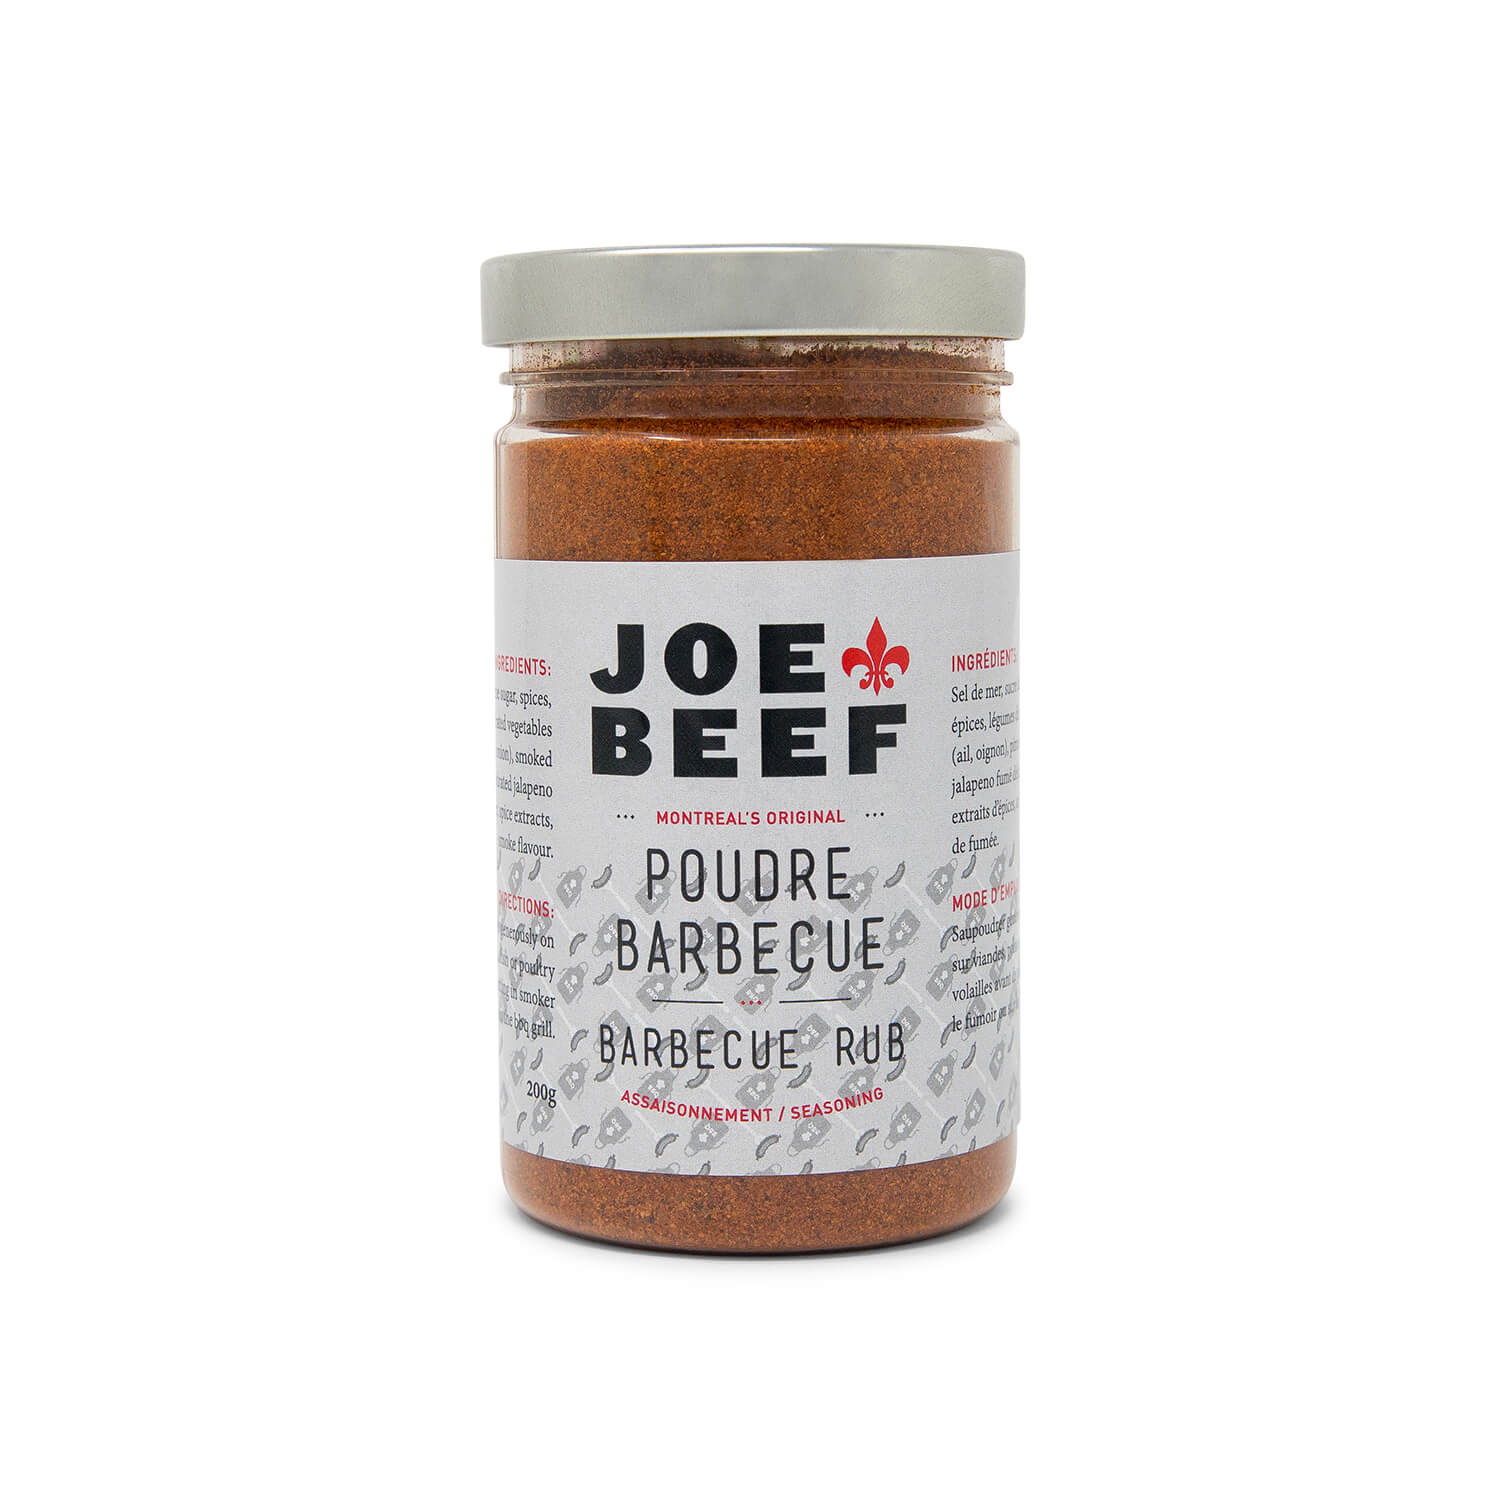 Poudre Barbecue Joe Beef (200 g)